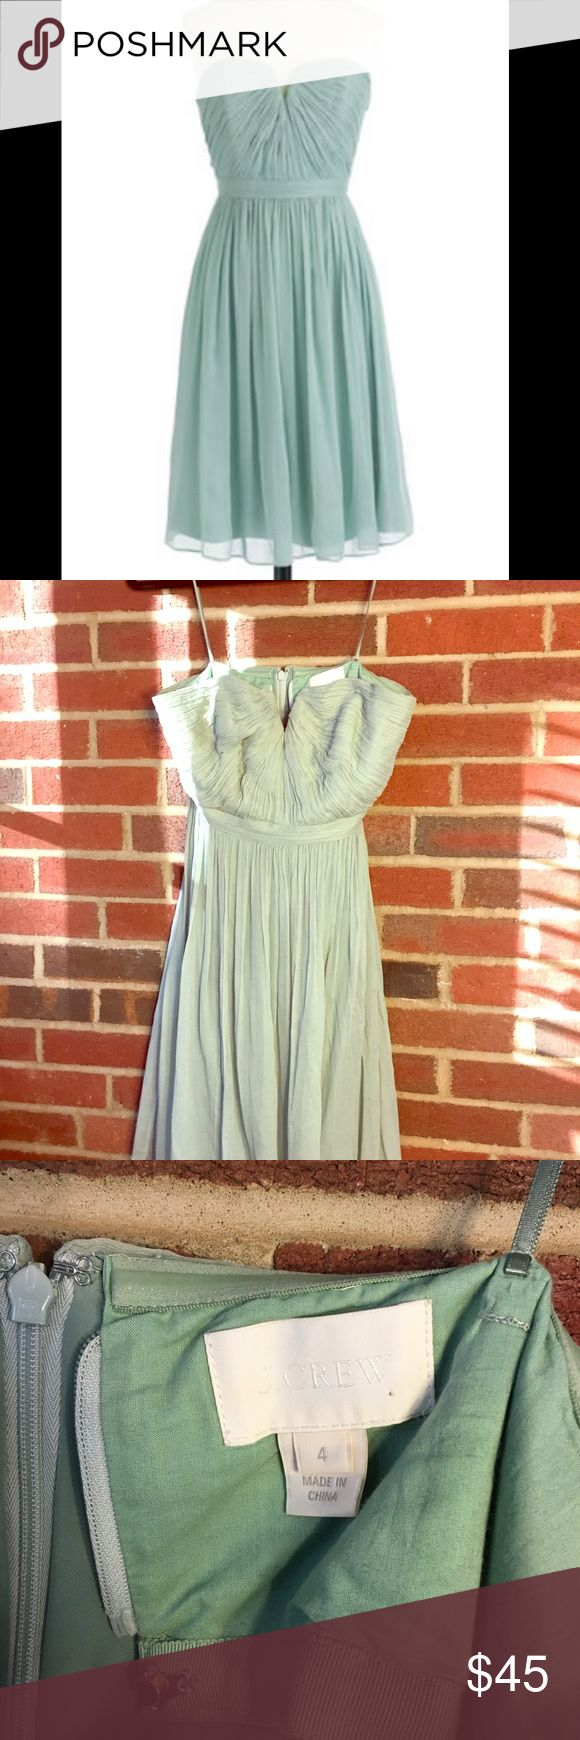 J.Crew Nadia bridesmaid dress in dusty shale J. crew Nadia bridesmaid dress in Dusty Shale size 4. Interior has an attached corset for added support. Worn once, excellent condition. J. Crew Dresses Strapless